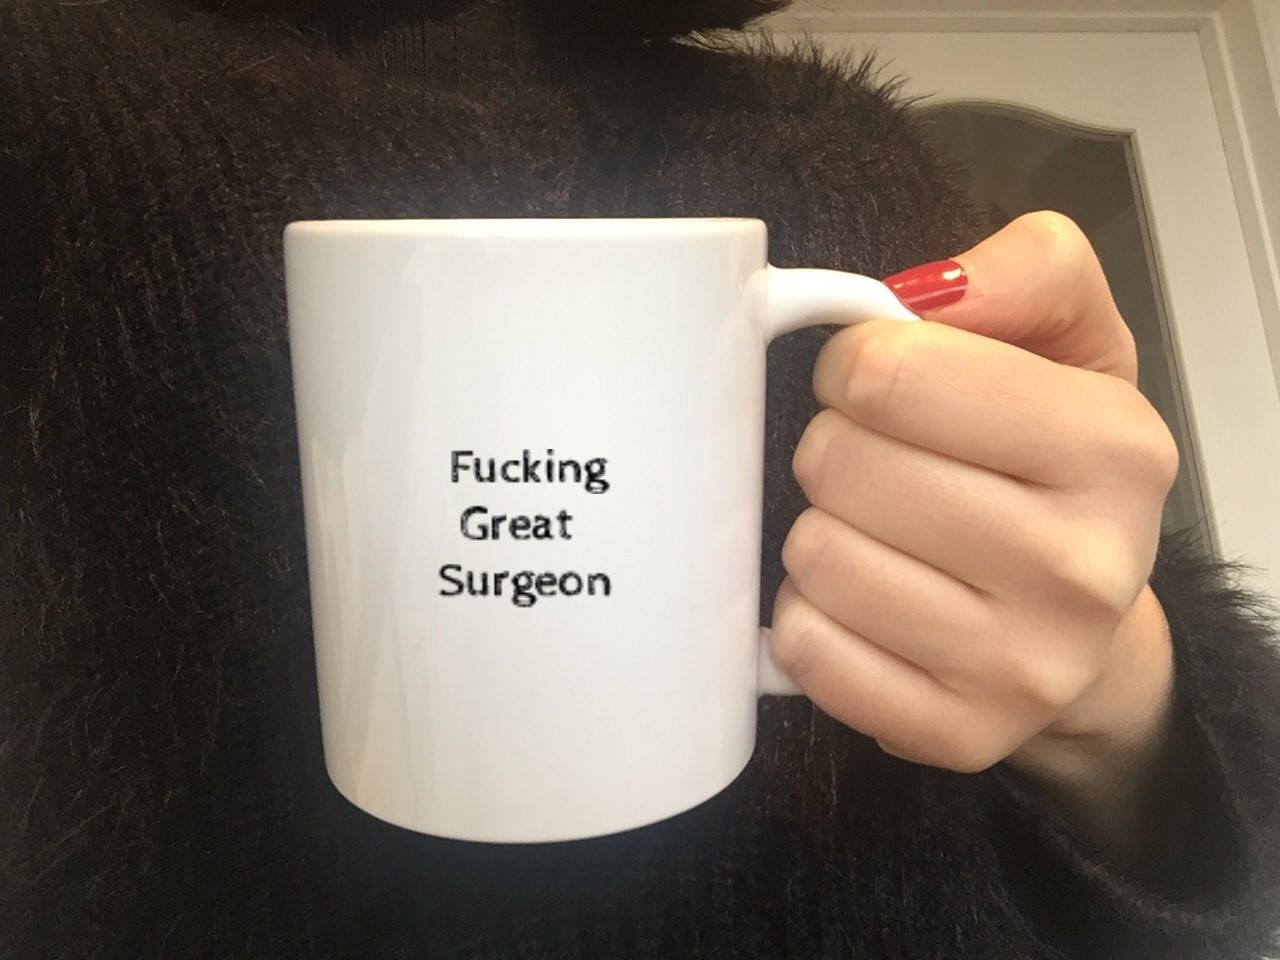 Shop Our Large Selection of Surgeon Coffee Mugs. Unique Gift Ideas for Surgeons. Best Gifts For Surgeons - Surgeon Mugs - Funny Surgeon Gift Ideas - Fucking ...